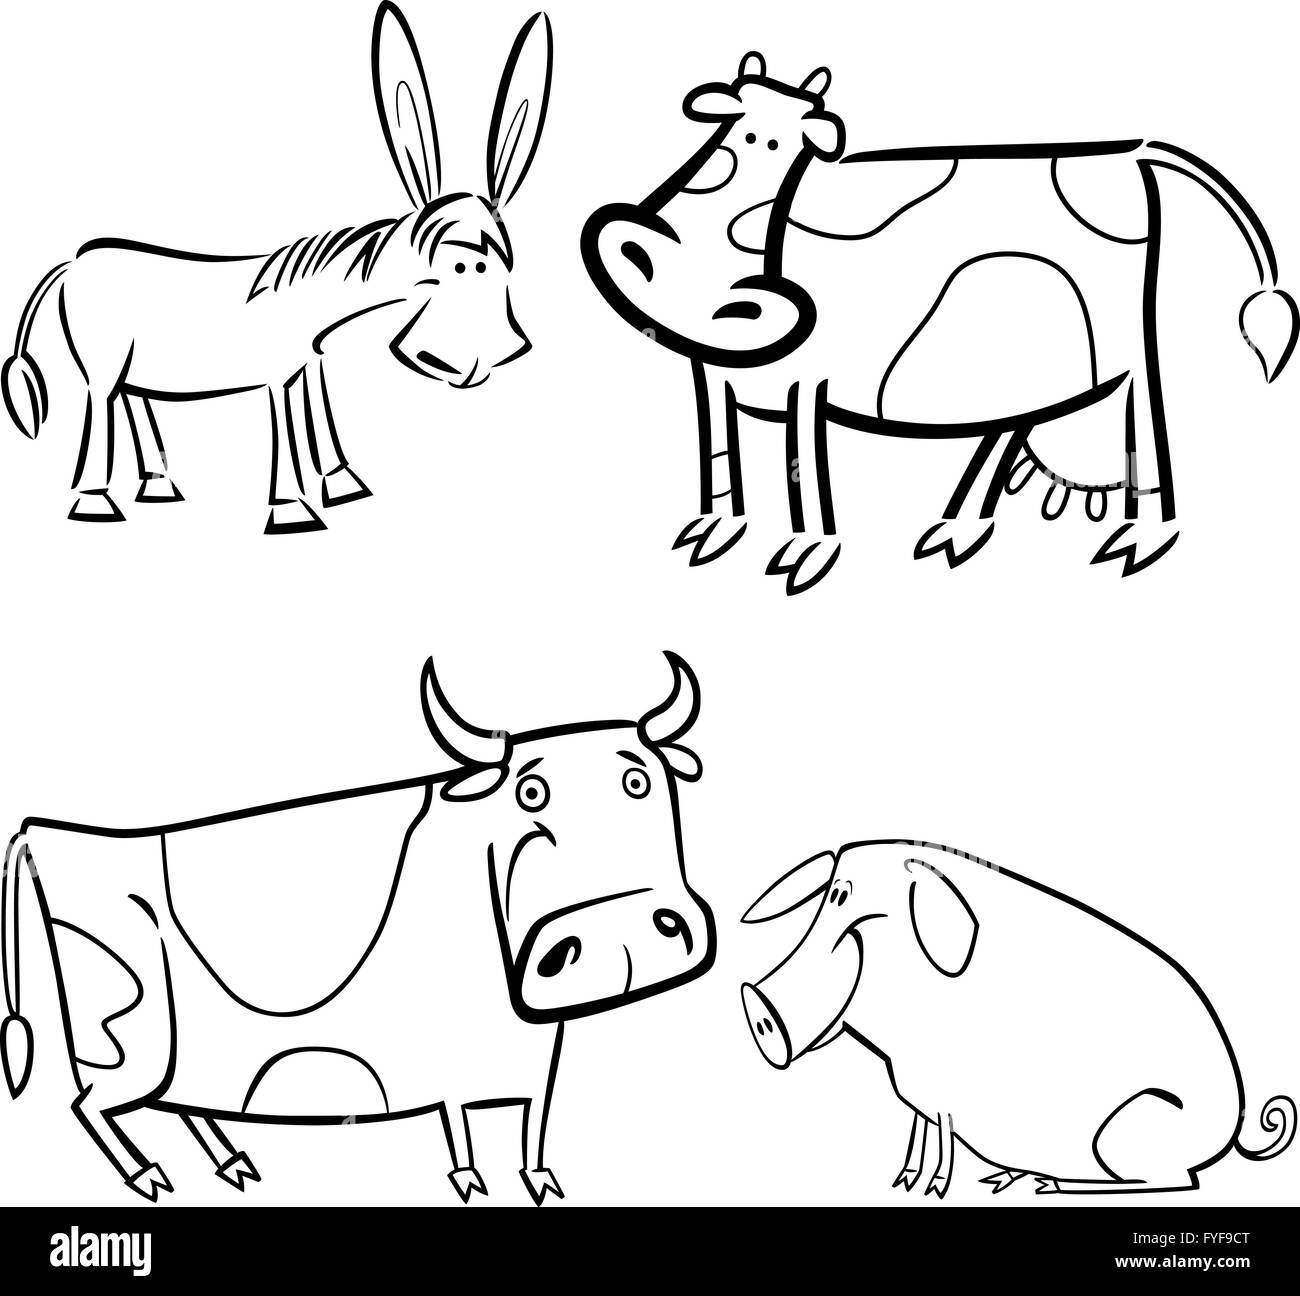 farm animals set for coloring Stock Photo: 102984248 - Alamy